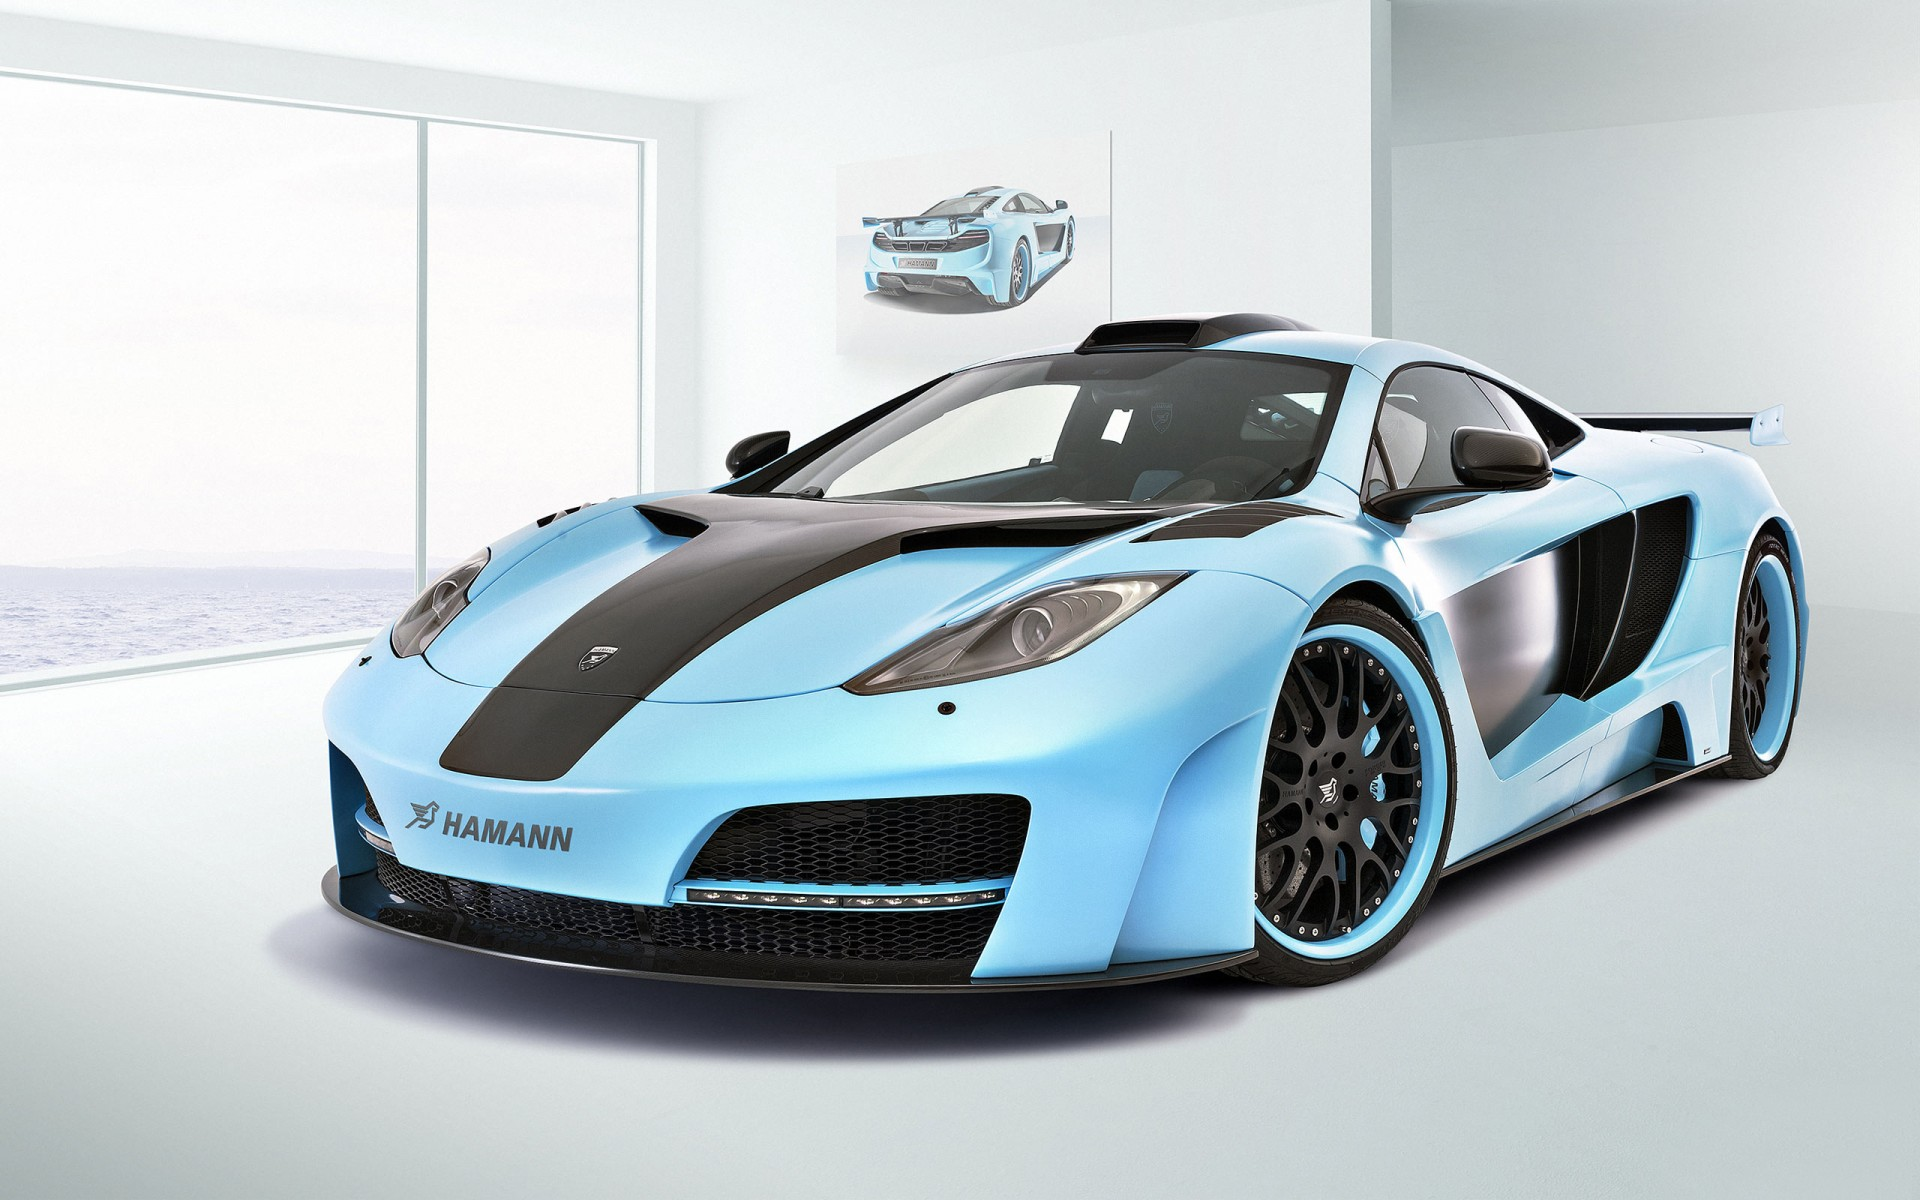 2013 hamann mclaren mp4 12c memor wallpaper hd car wallpapers. Black Bedroom Furniture Sets. Home Design Ideas